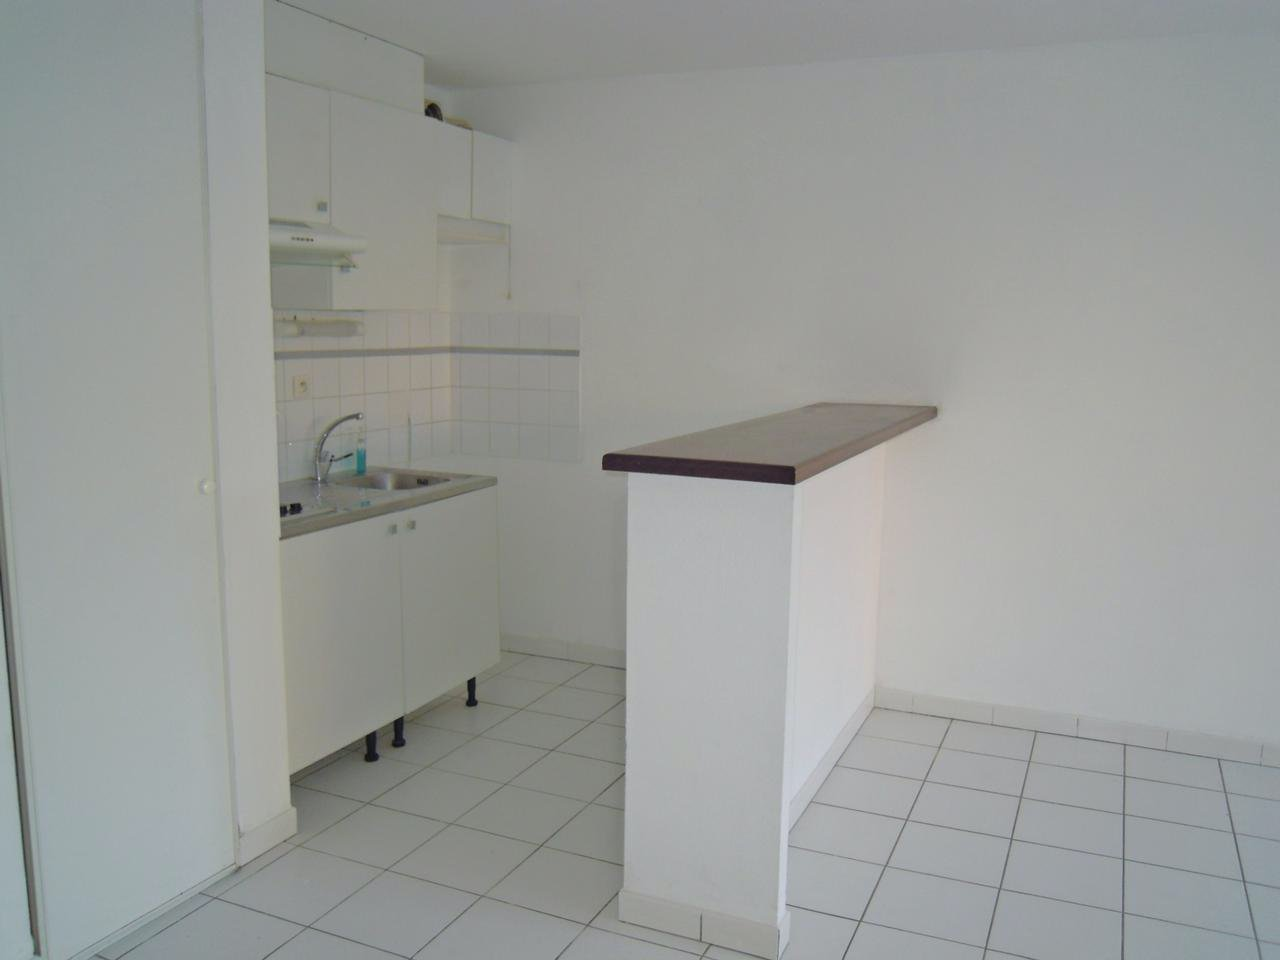 Apartment close by the market in Liberation